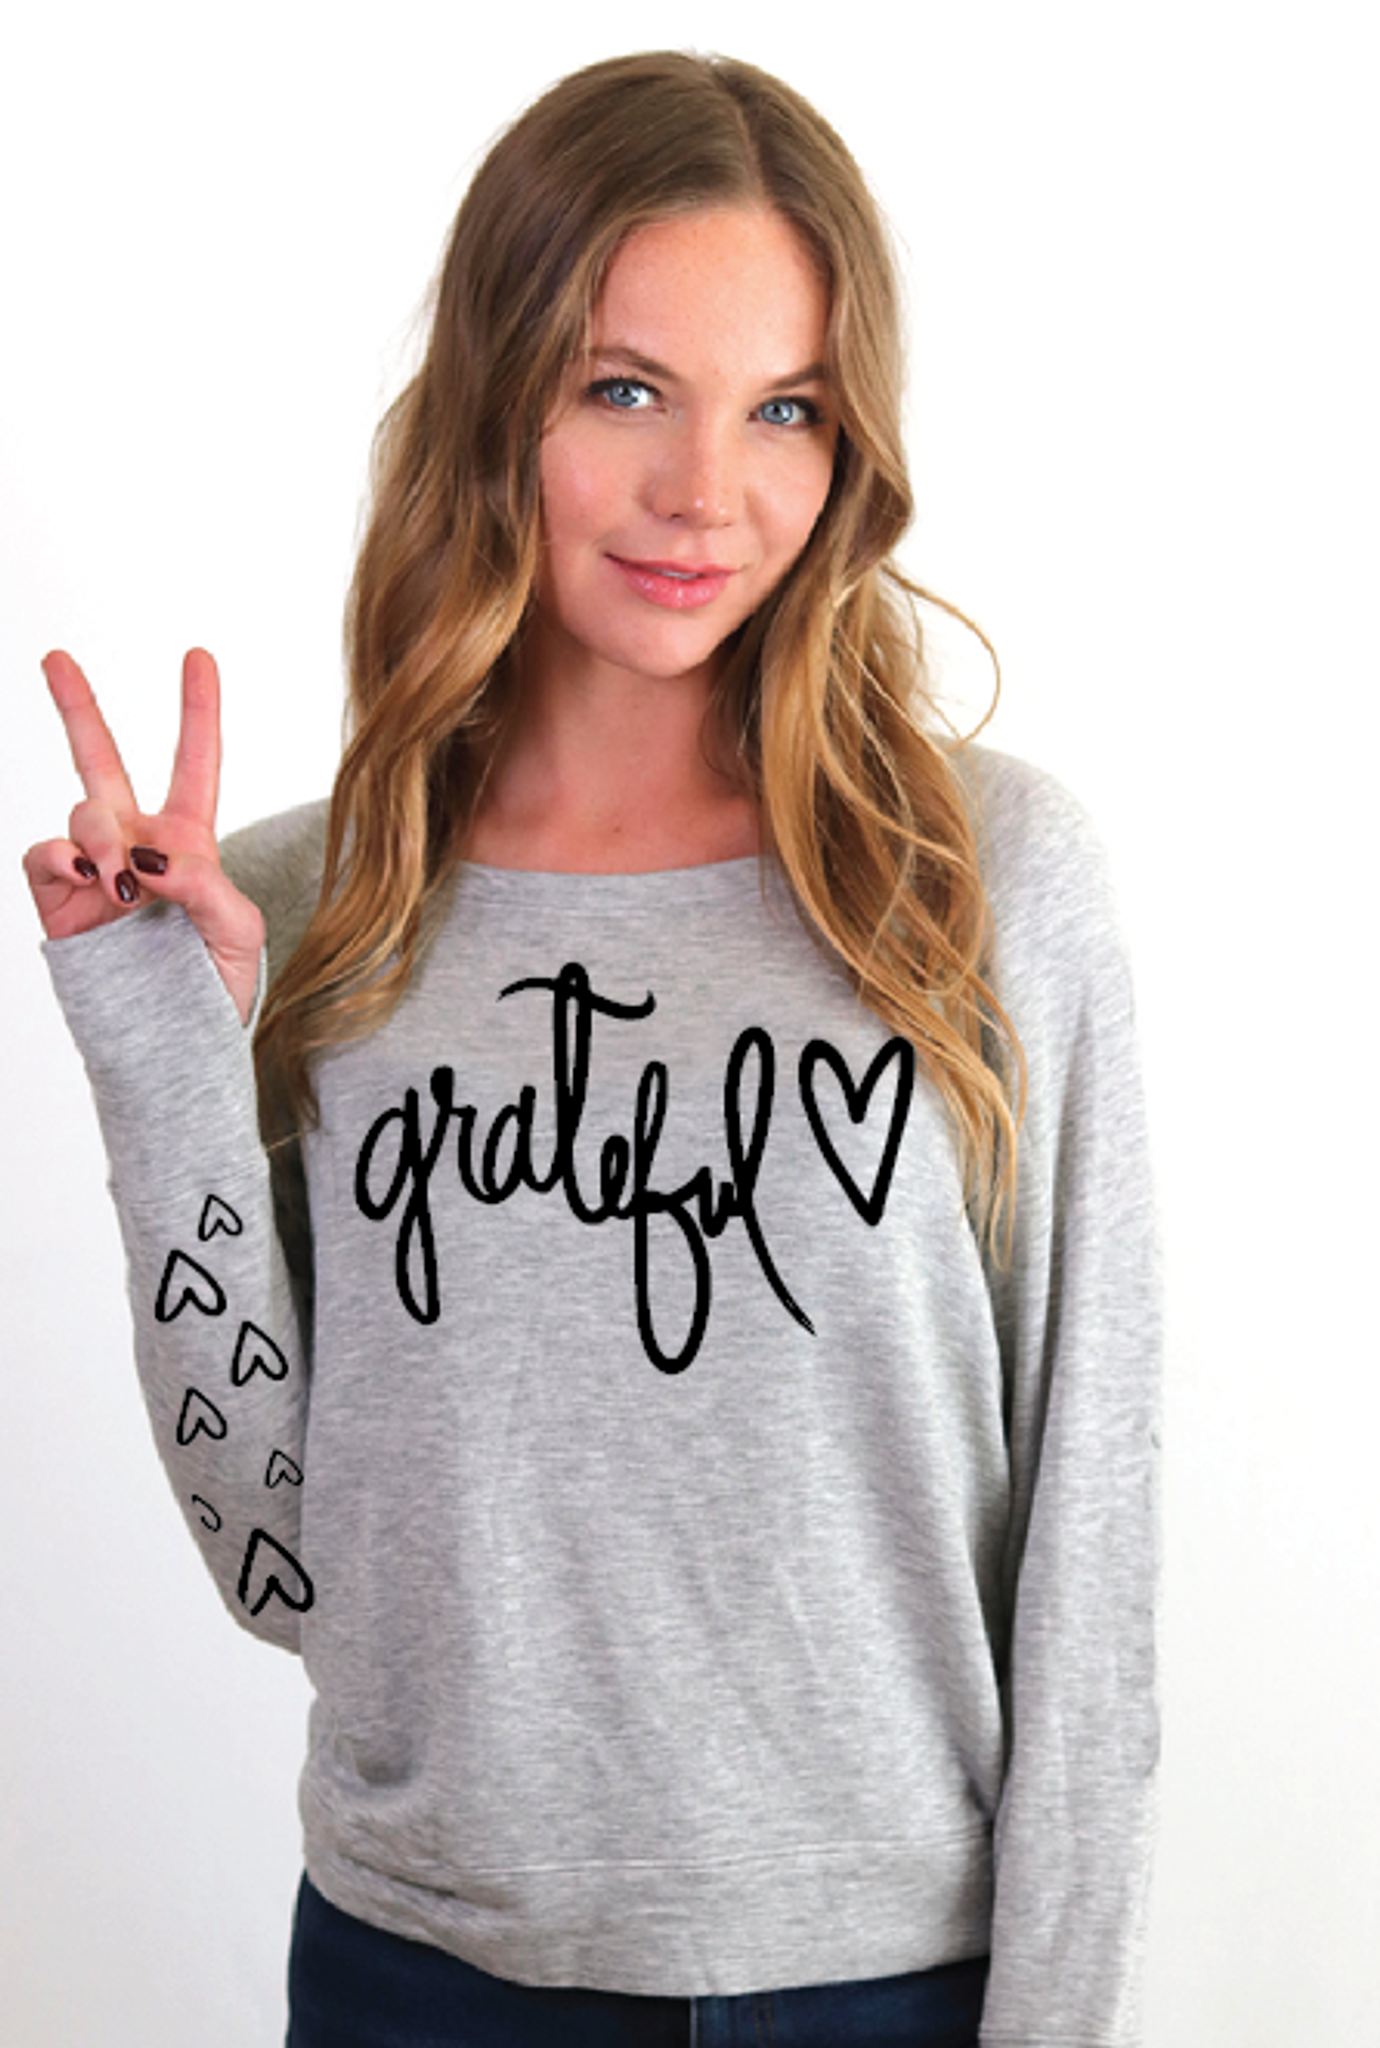 GRATEFUL HEART L/S FLEECE PULLOVER with  HEARTS on Arm (Grey)